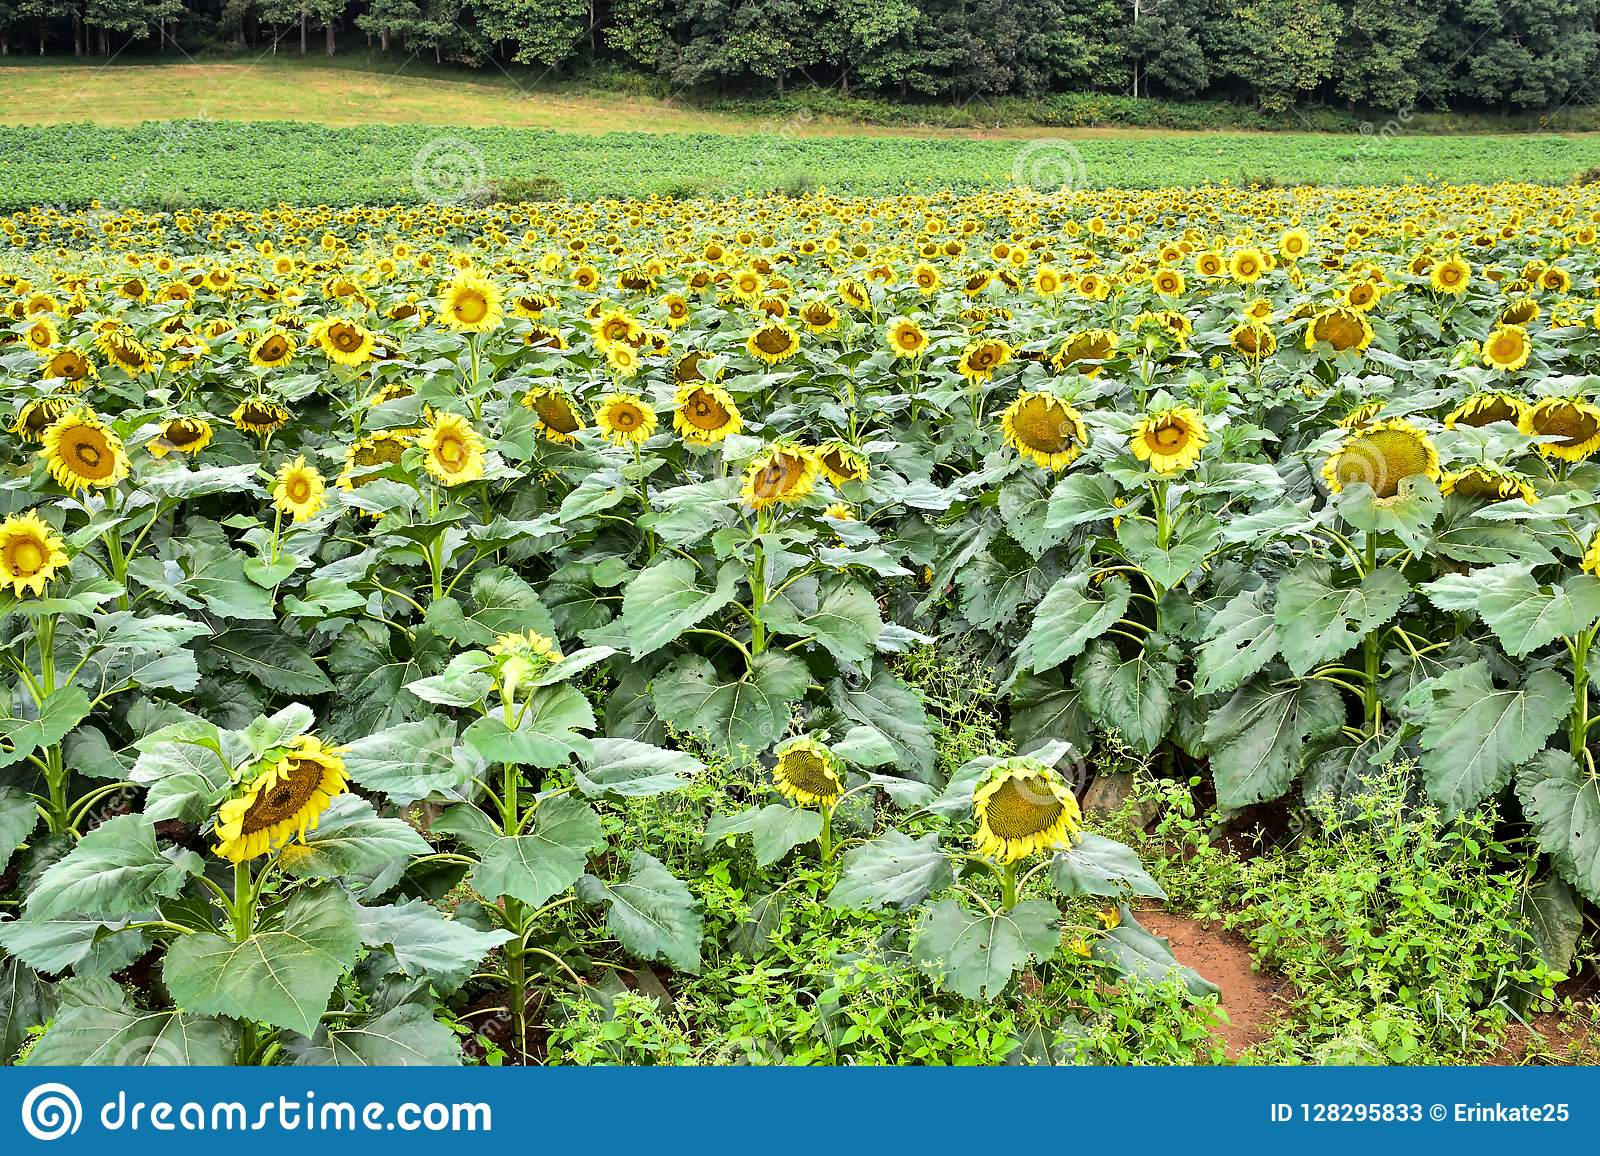 A blooming sunflower field, Jasper, Georgia, USA